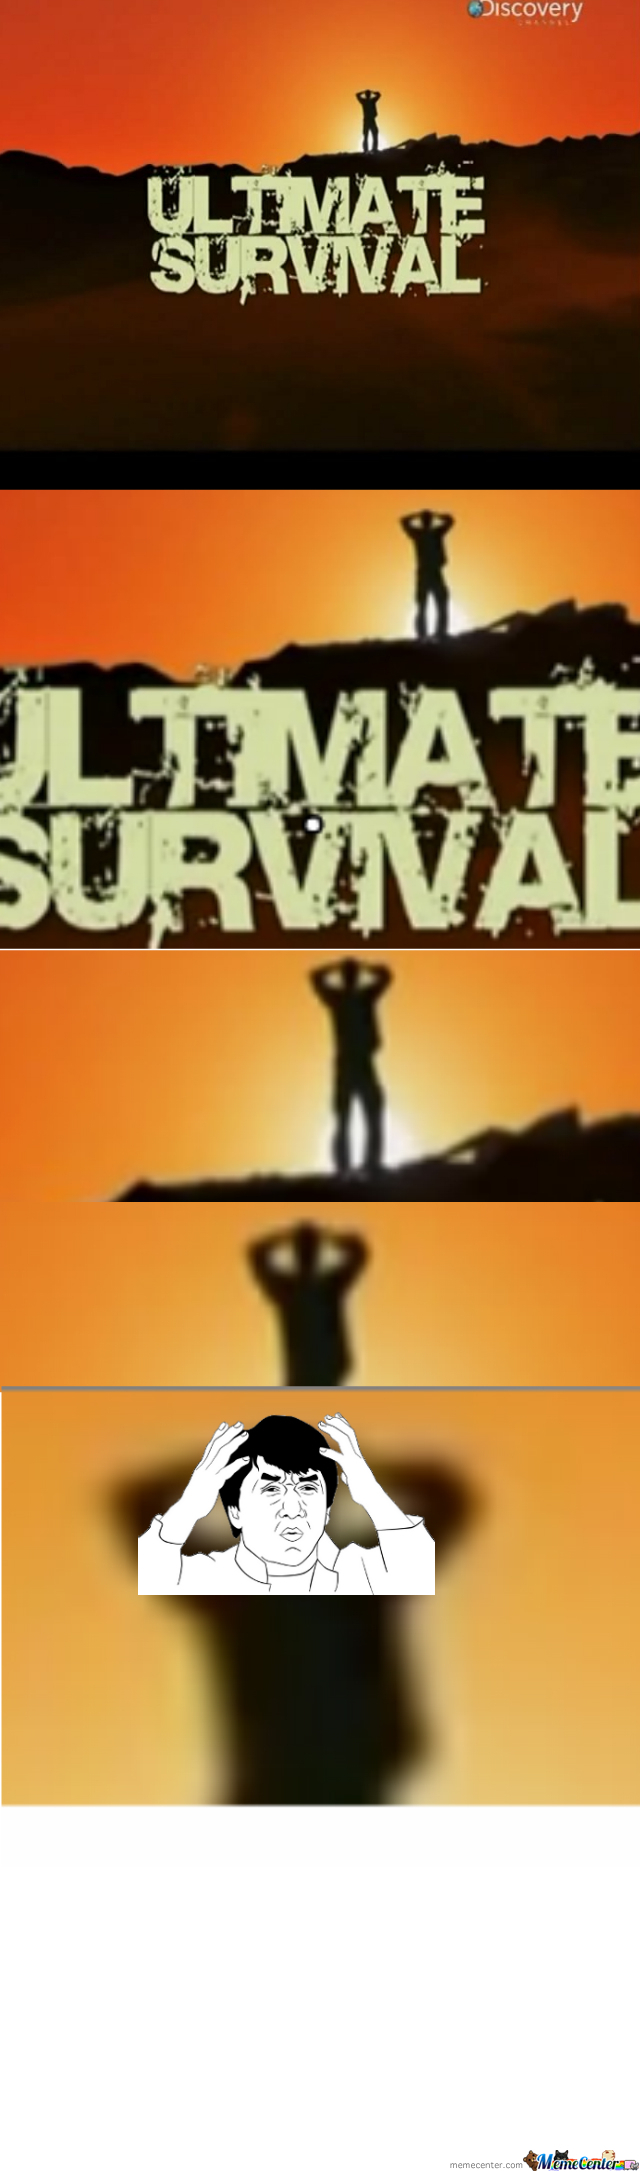 When I See Ultimate Survival...